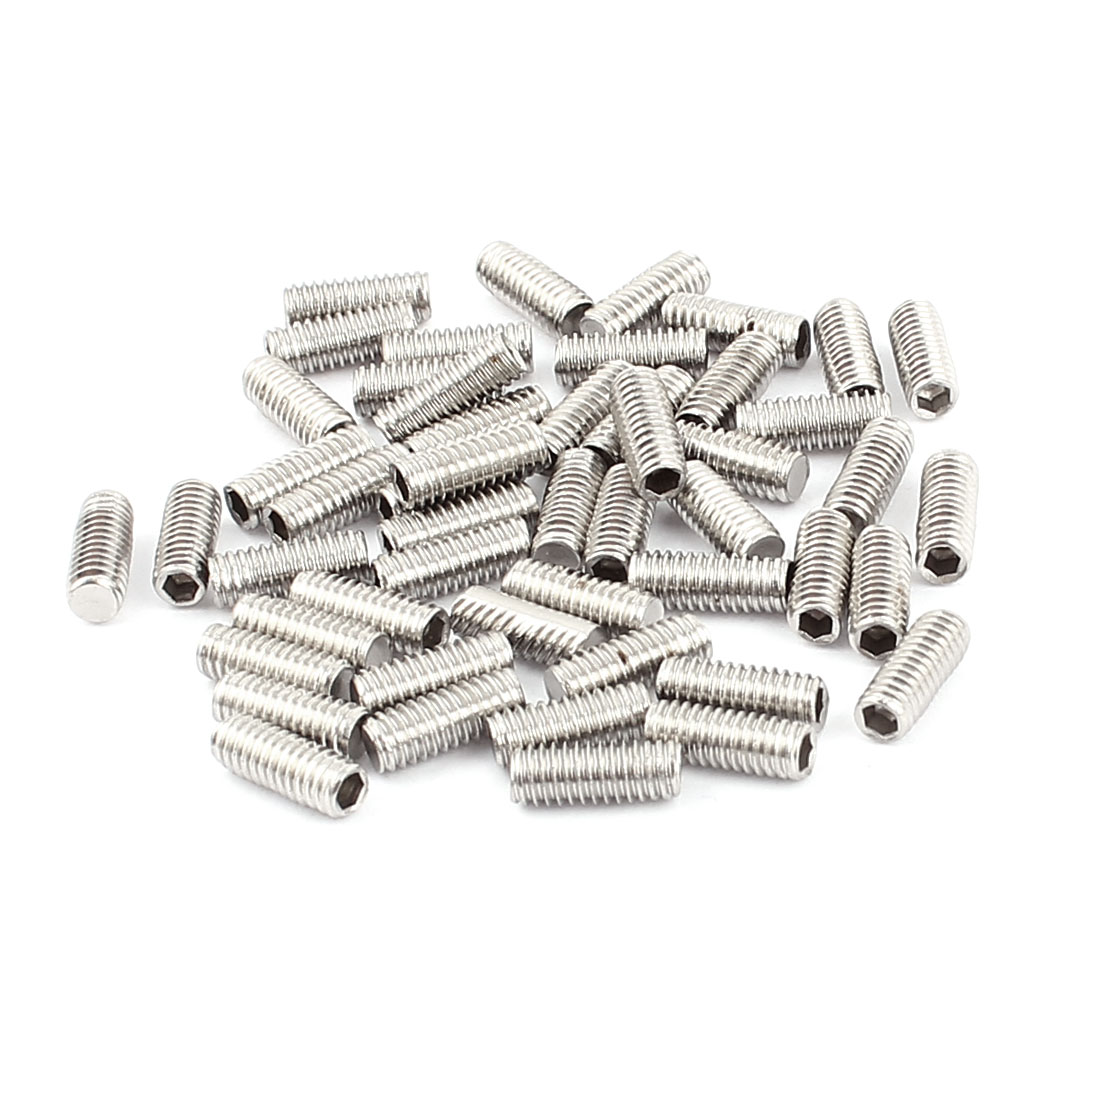 50pcs M4x10mm Threaded Head Hex Socket Flat Point Set Grub Screws